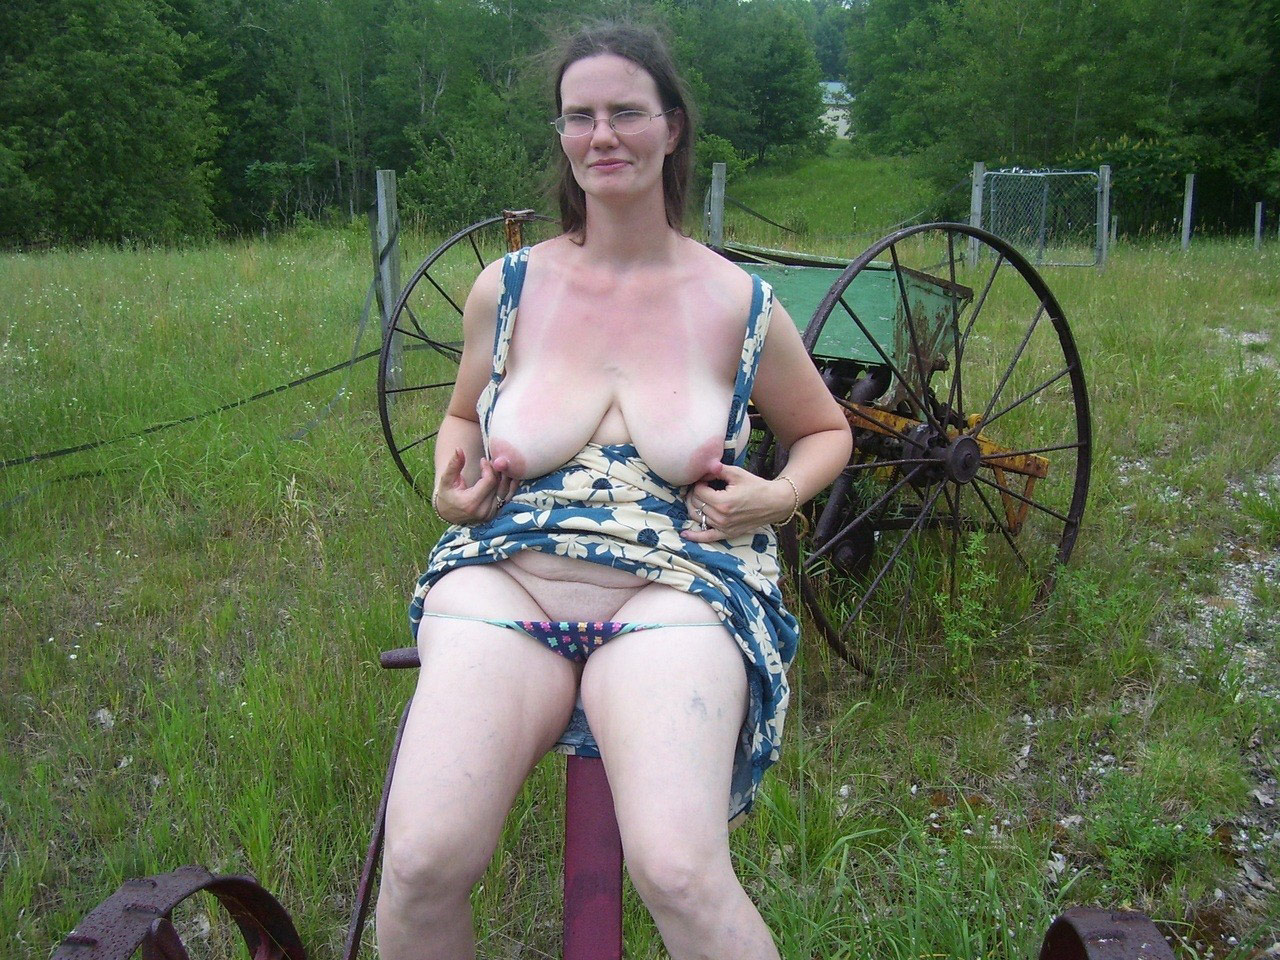 Country Mature Porn - Country mature falshers showing tits and pussies